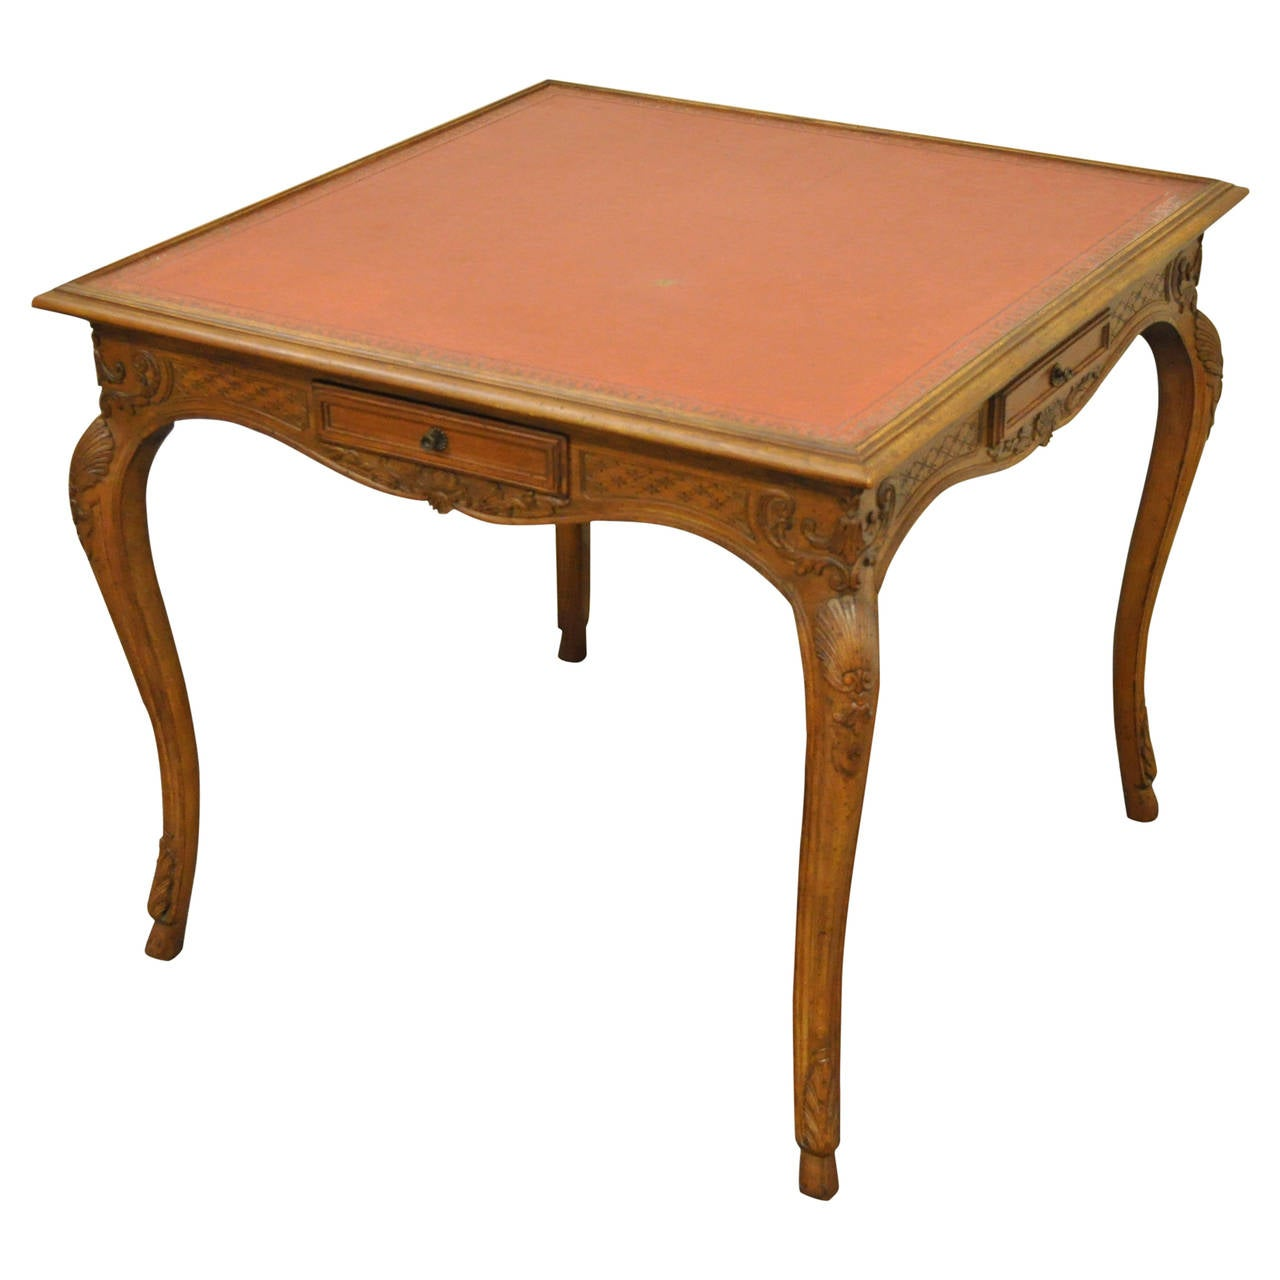 Italian Leather Top Hand-Carved Game Table in the French Louis XV Taste